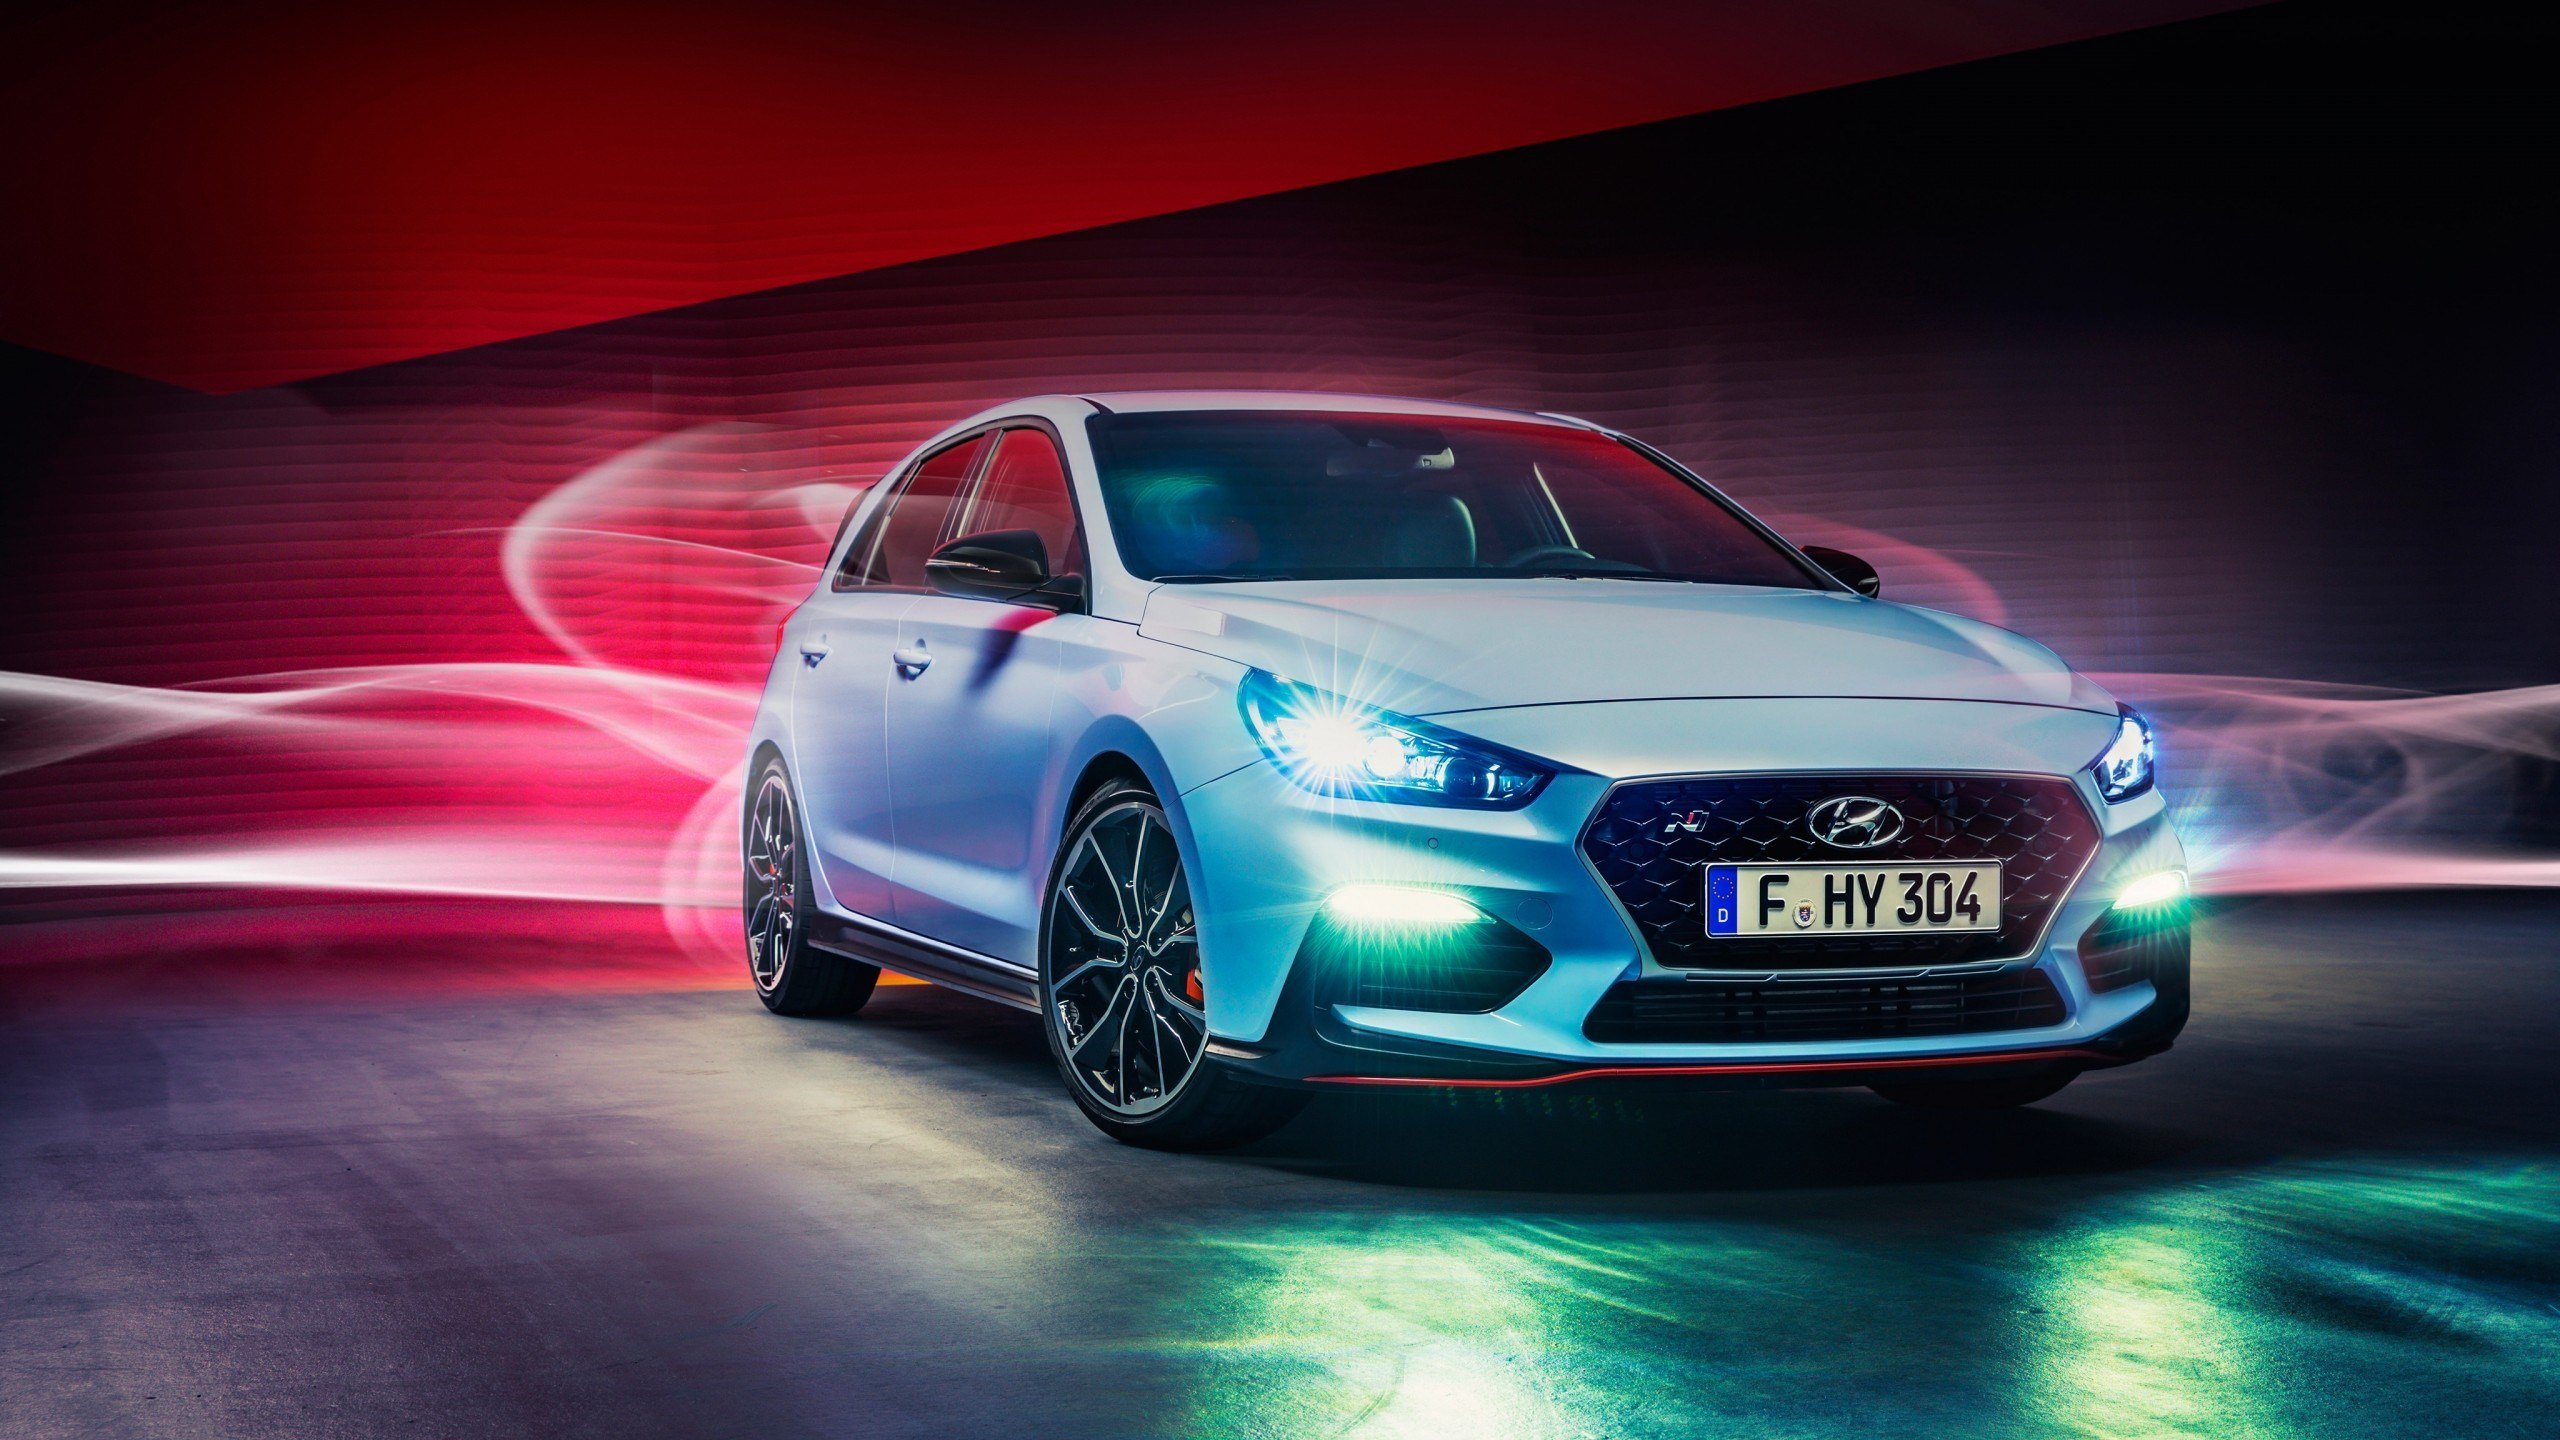 New 2017 Hyundai I30 N Wallpaper Hd Car Wallpapers Id 7970 On This Month